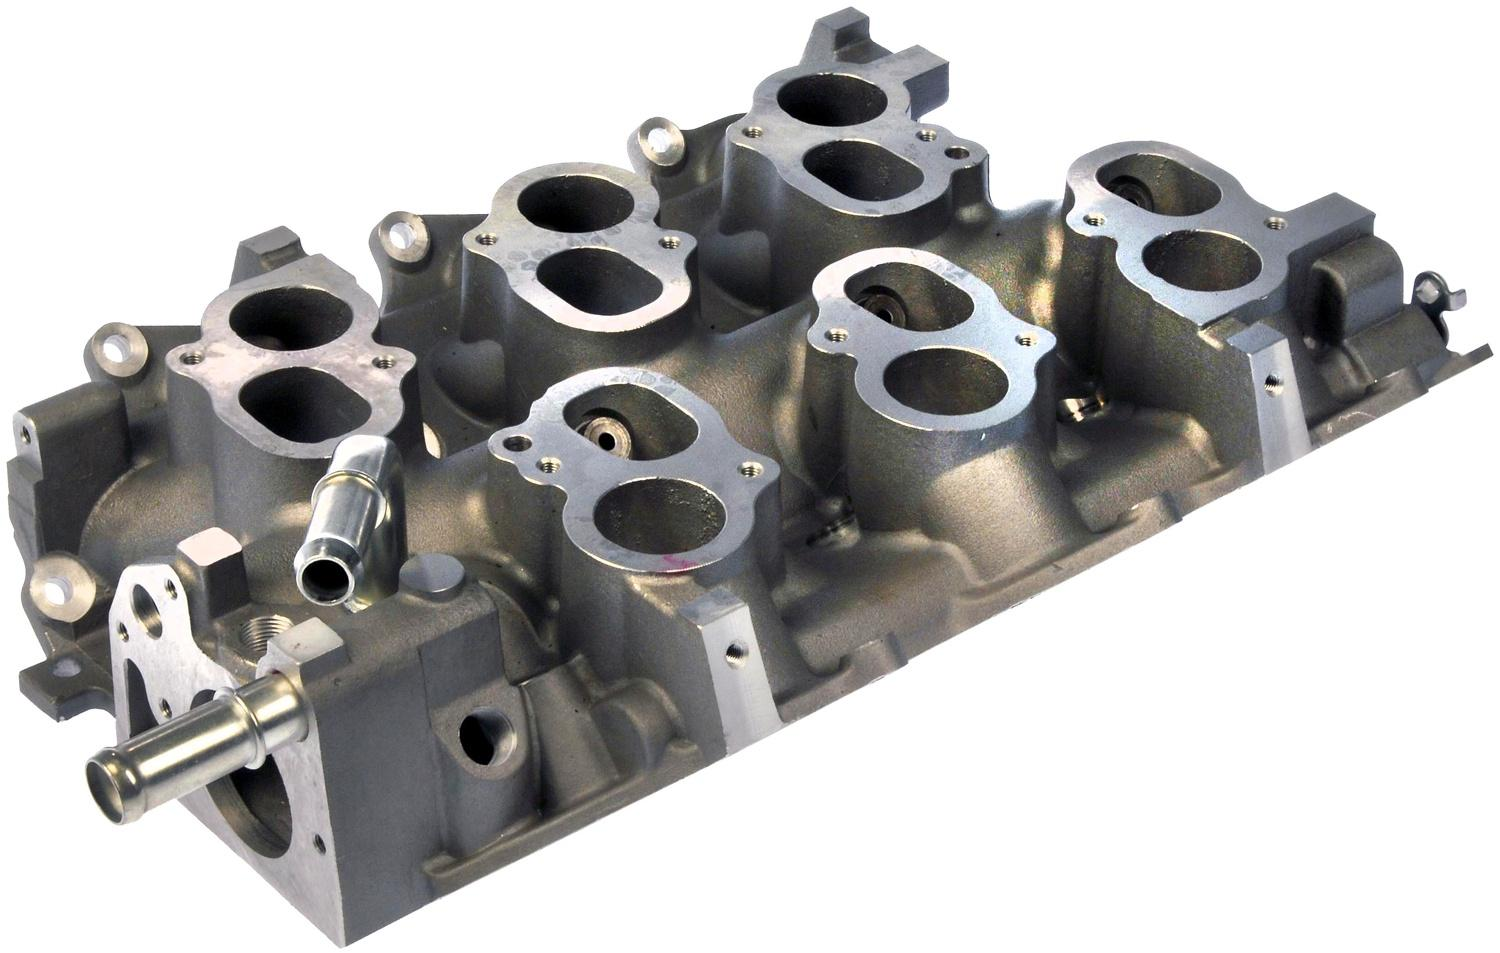 Engine Intake Manifold : Intake manifold l engine free image for